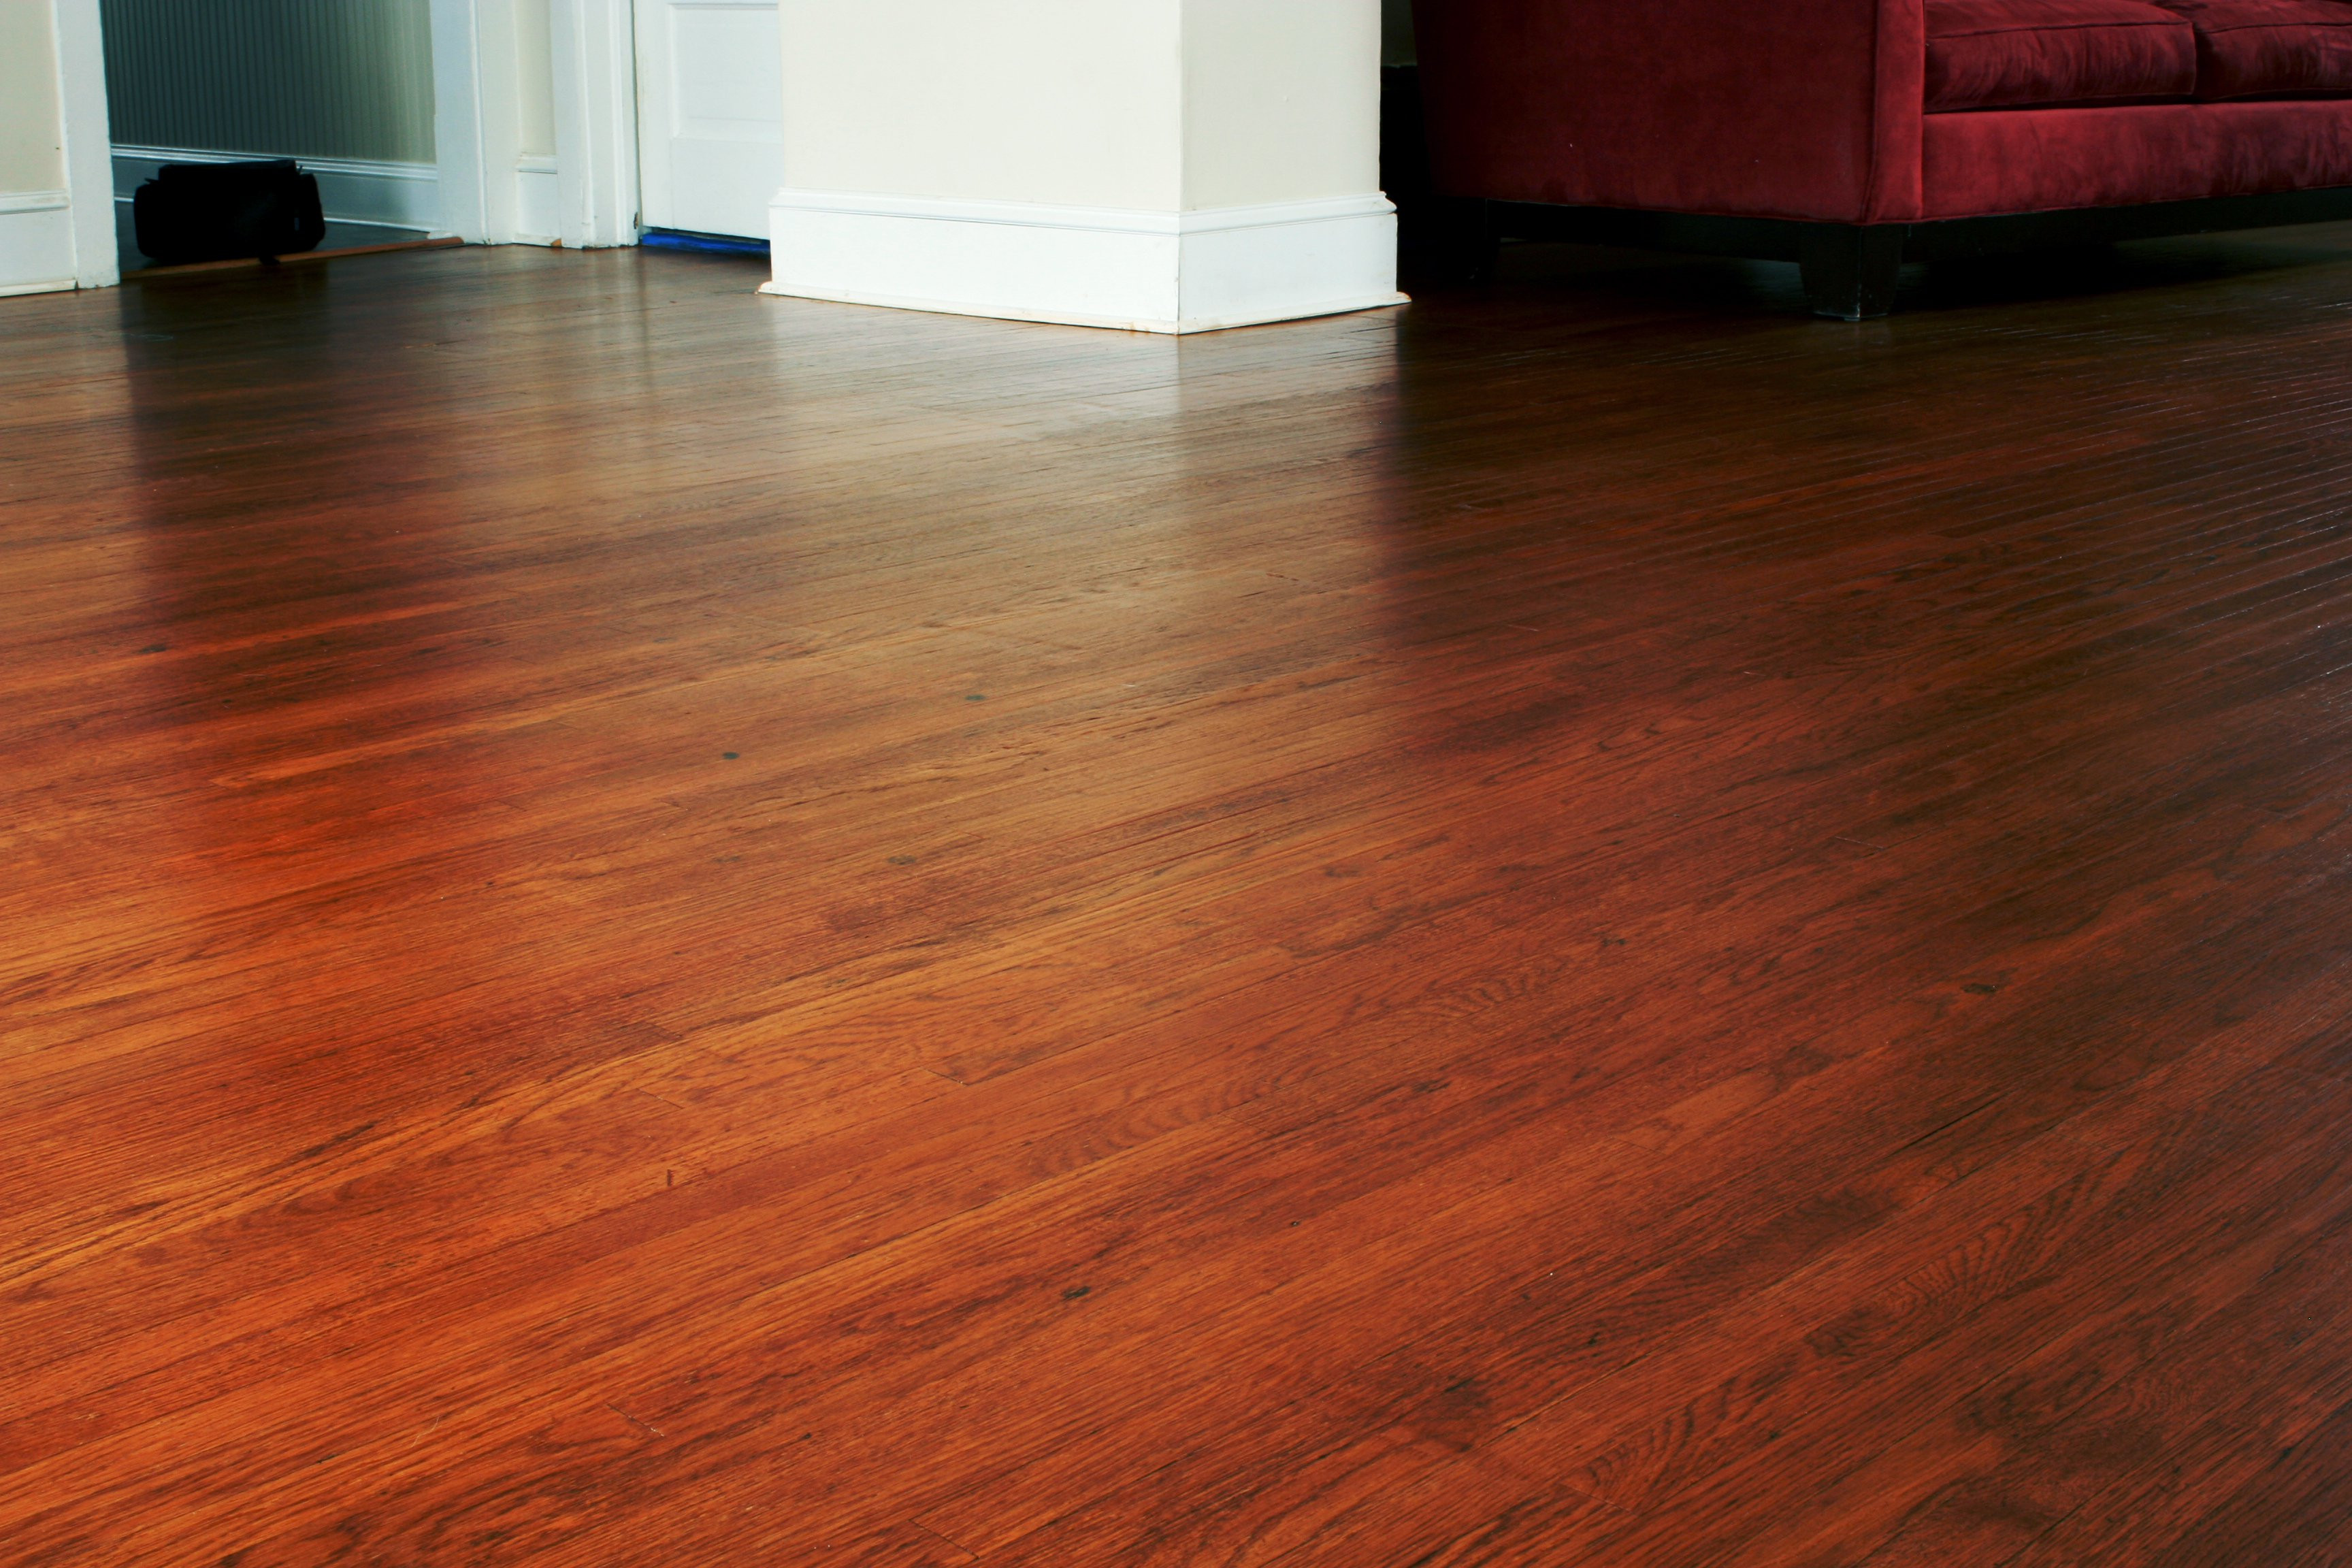 cost to refinish hardwood floors of how much to refinish wood floors adventures in staining my red oak throughout how much to refinish wood floors how to diagnose and repair sloping floors homeadvisor